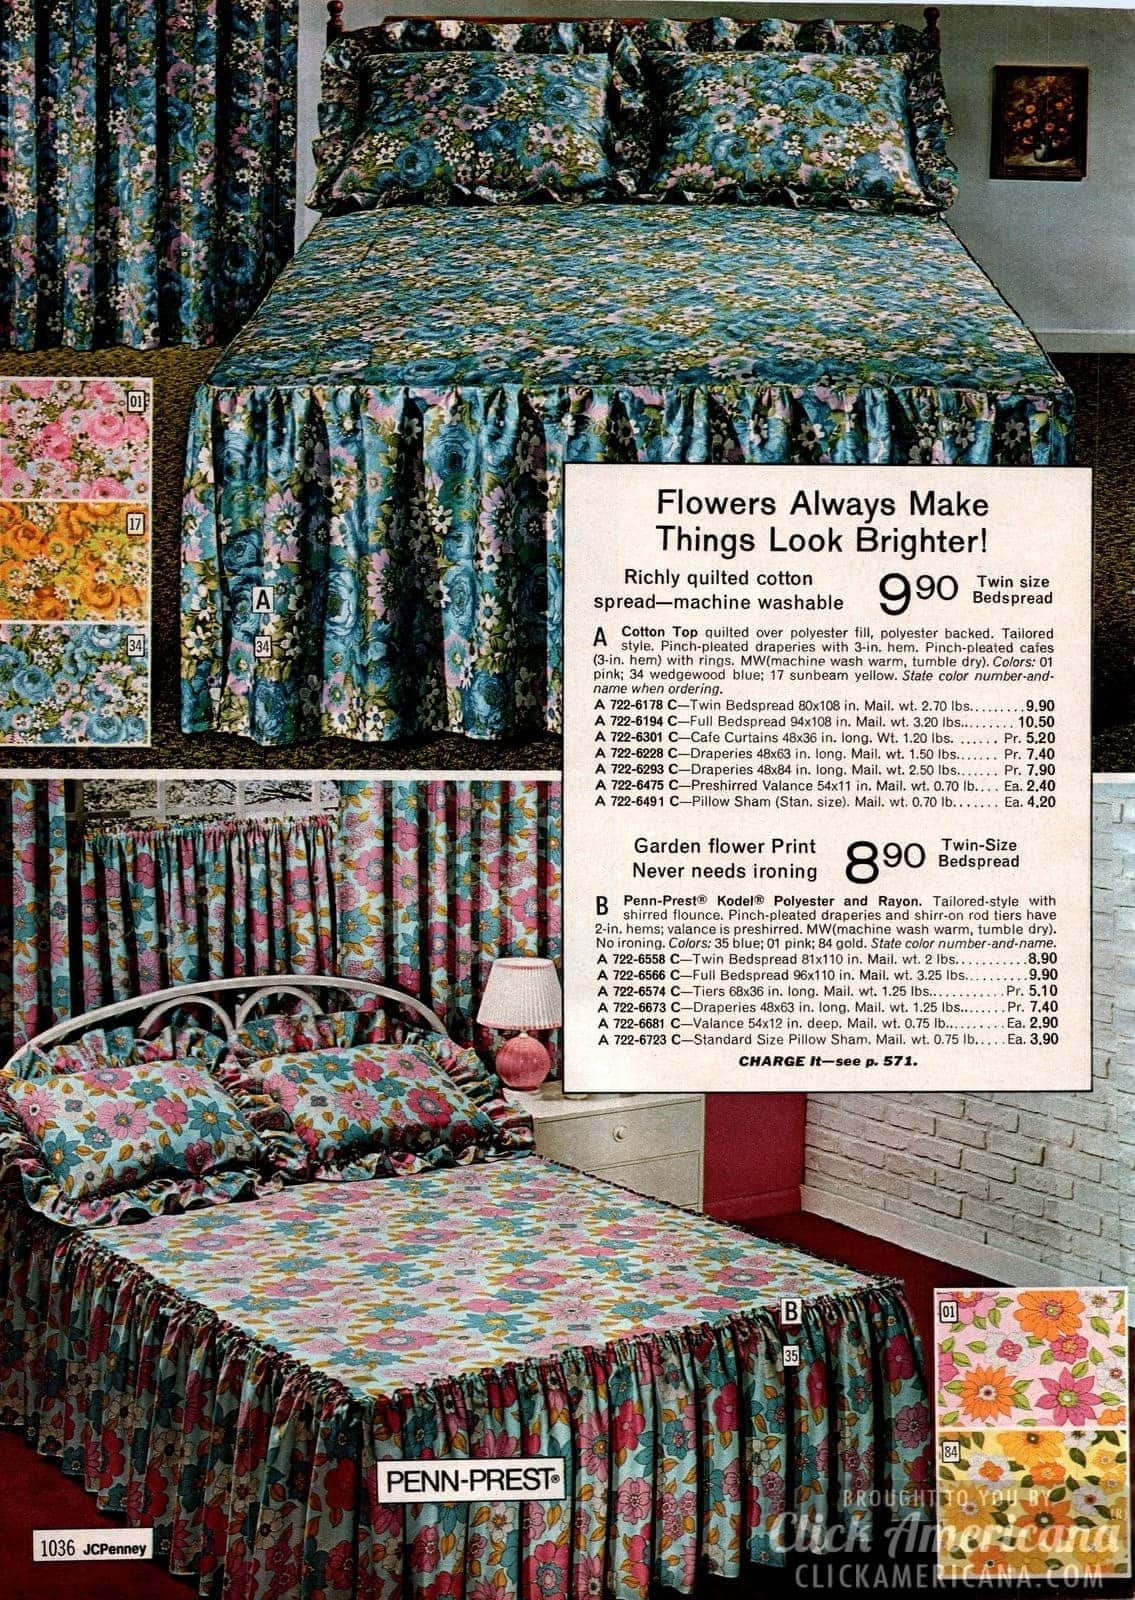 Old-fashioned quilted cotton garden flower print bedspreads